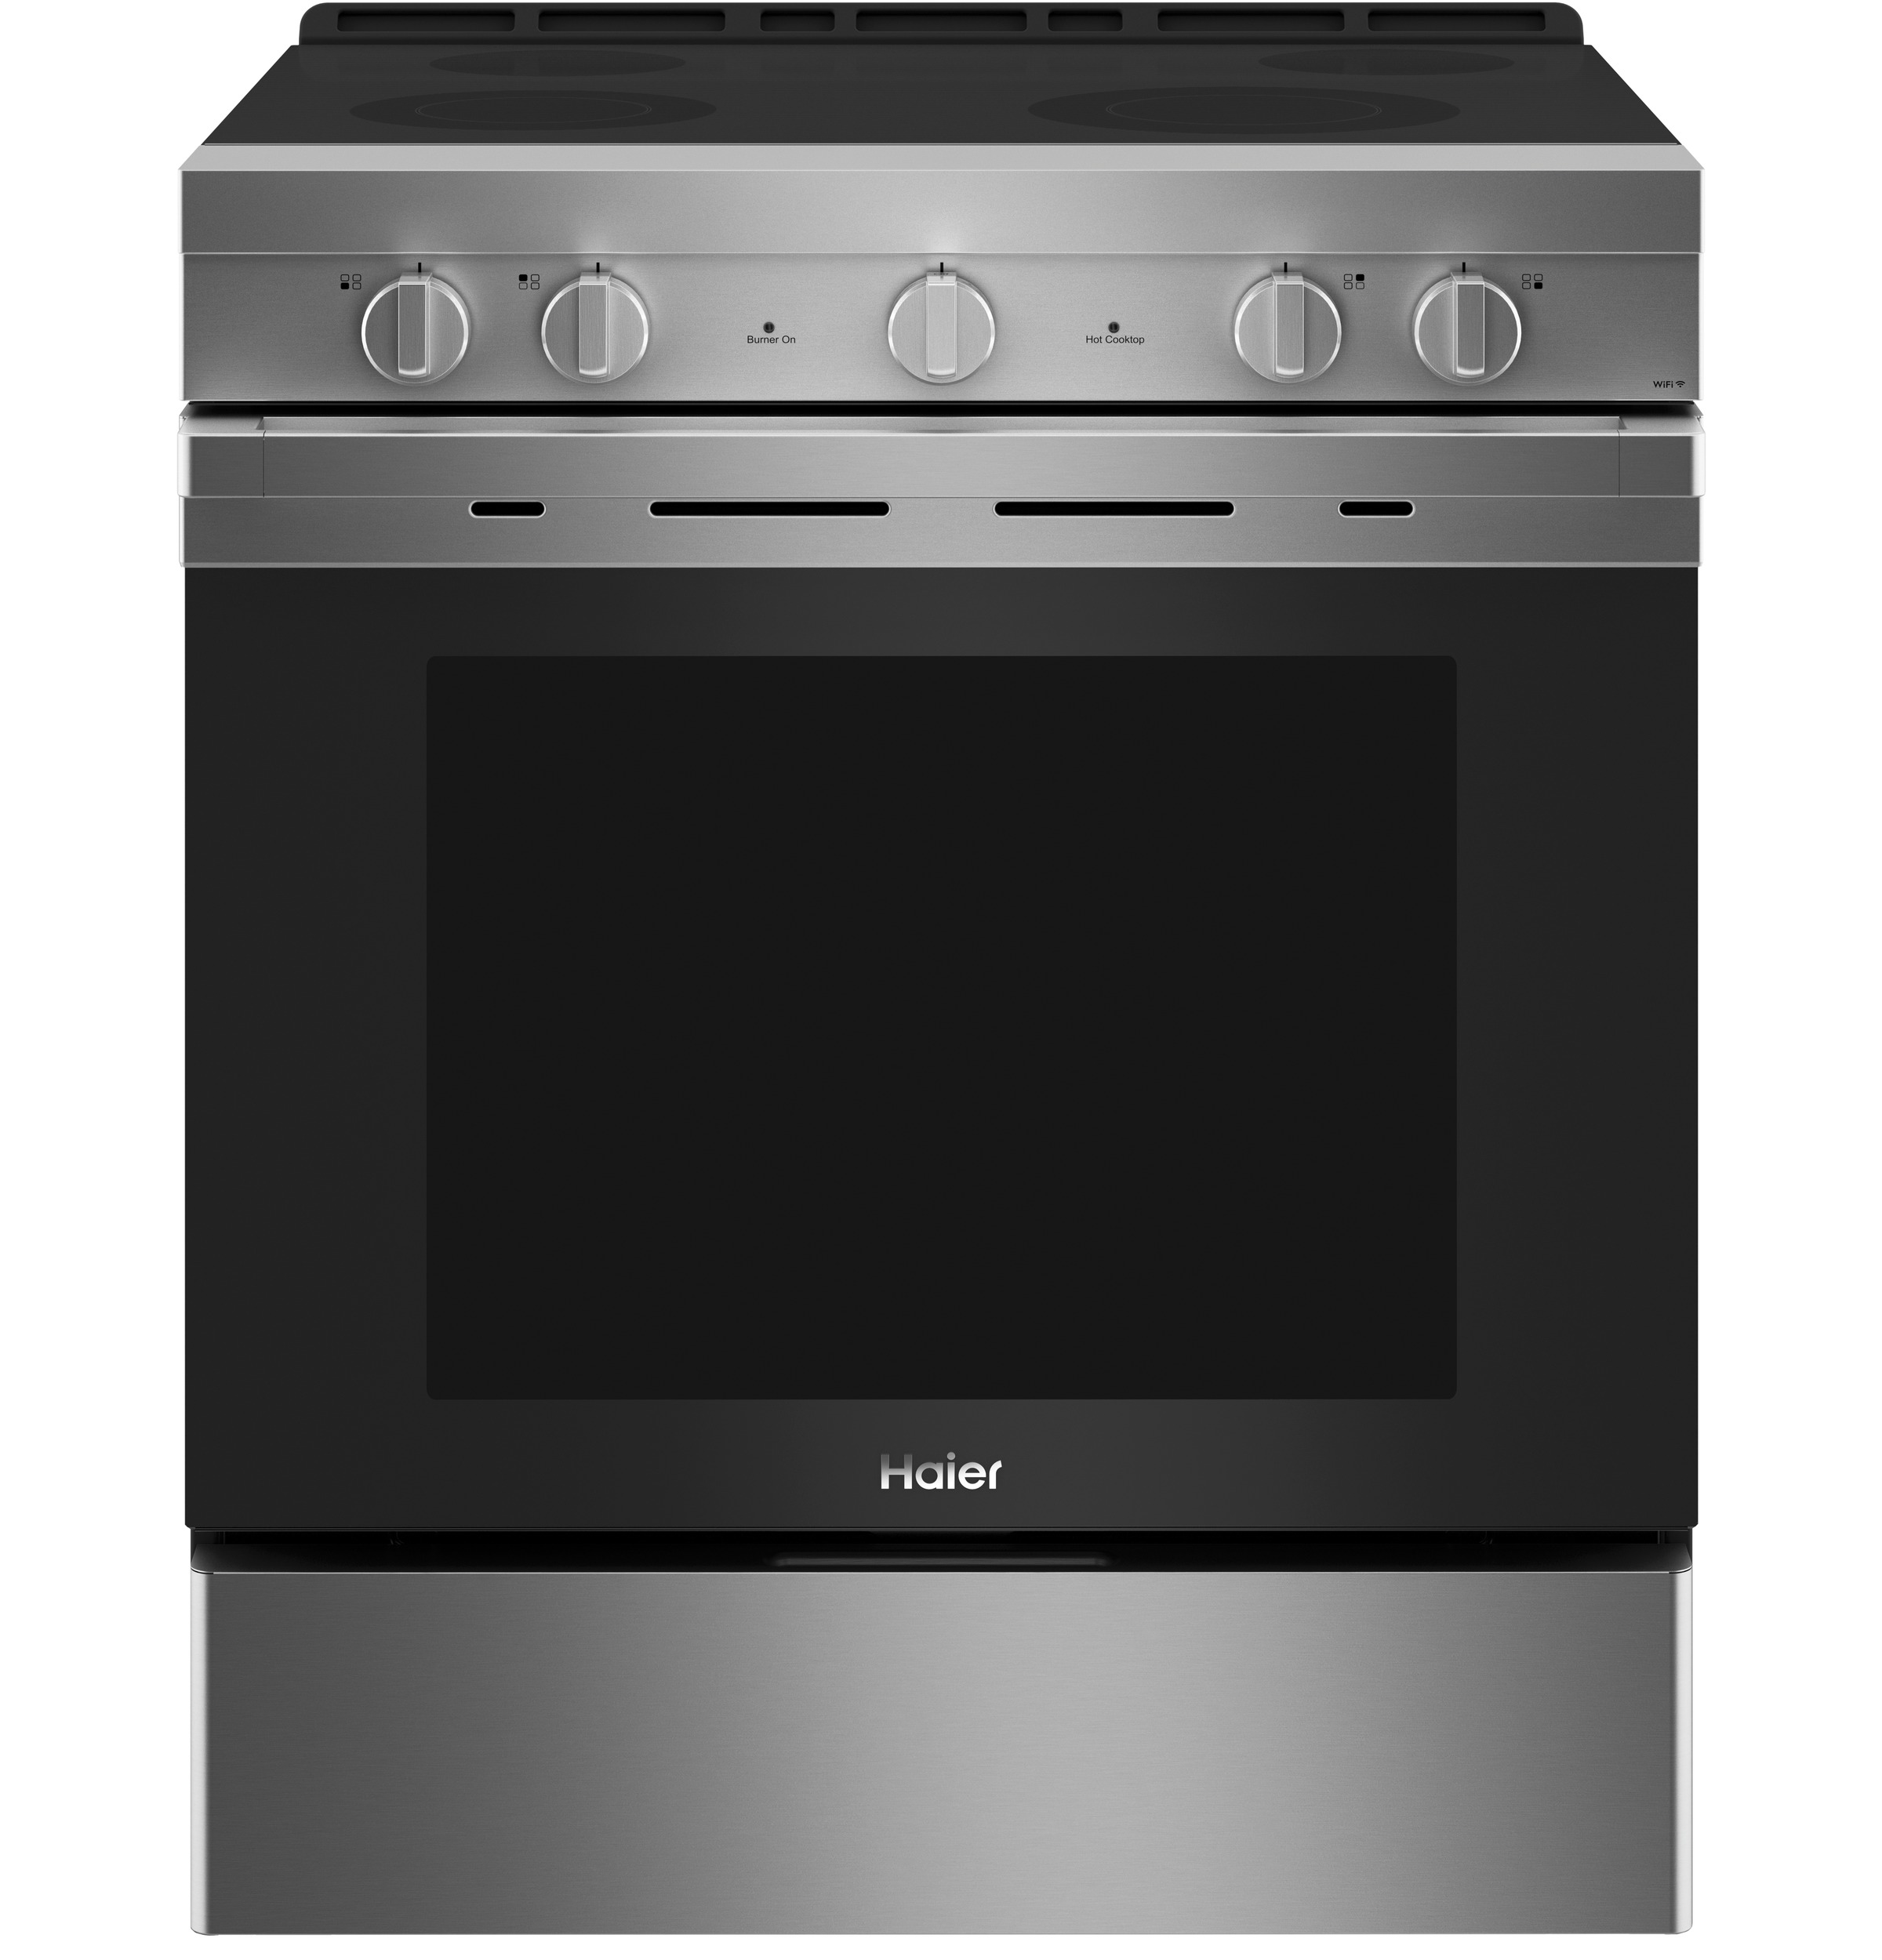 "Haier 30"" Smart Slide-In Electric Range with Convection"